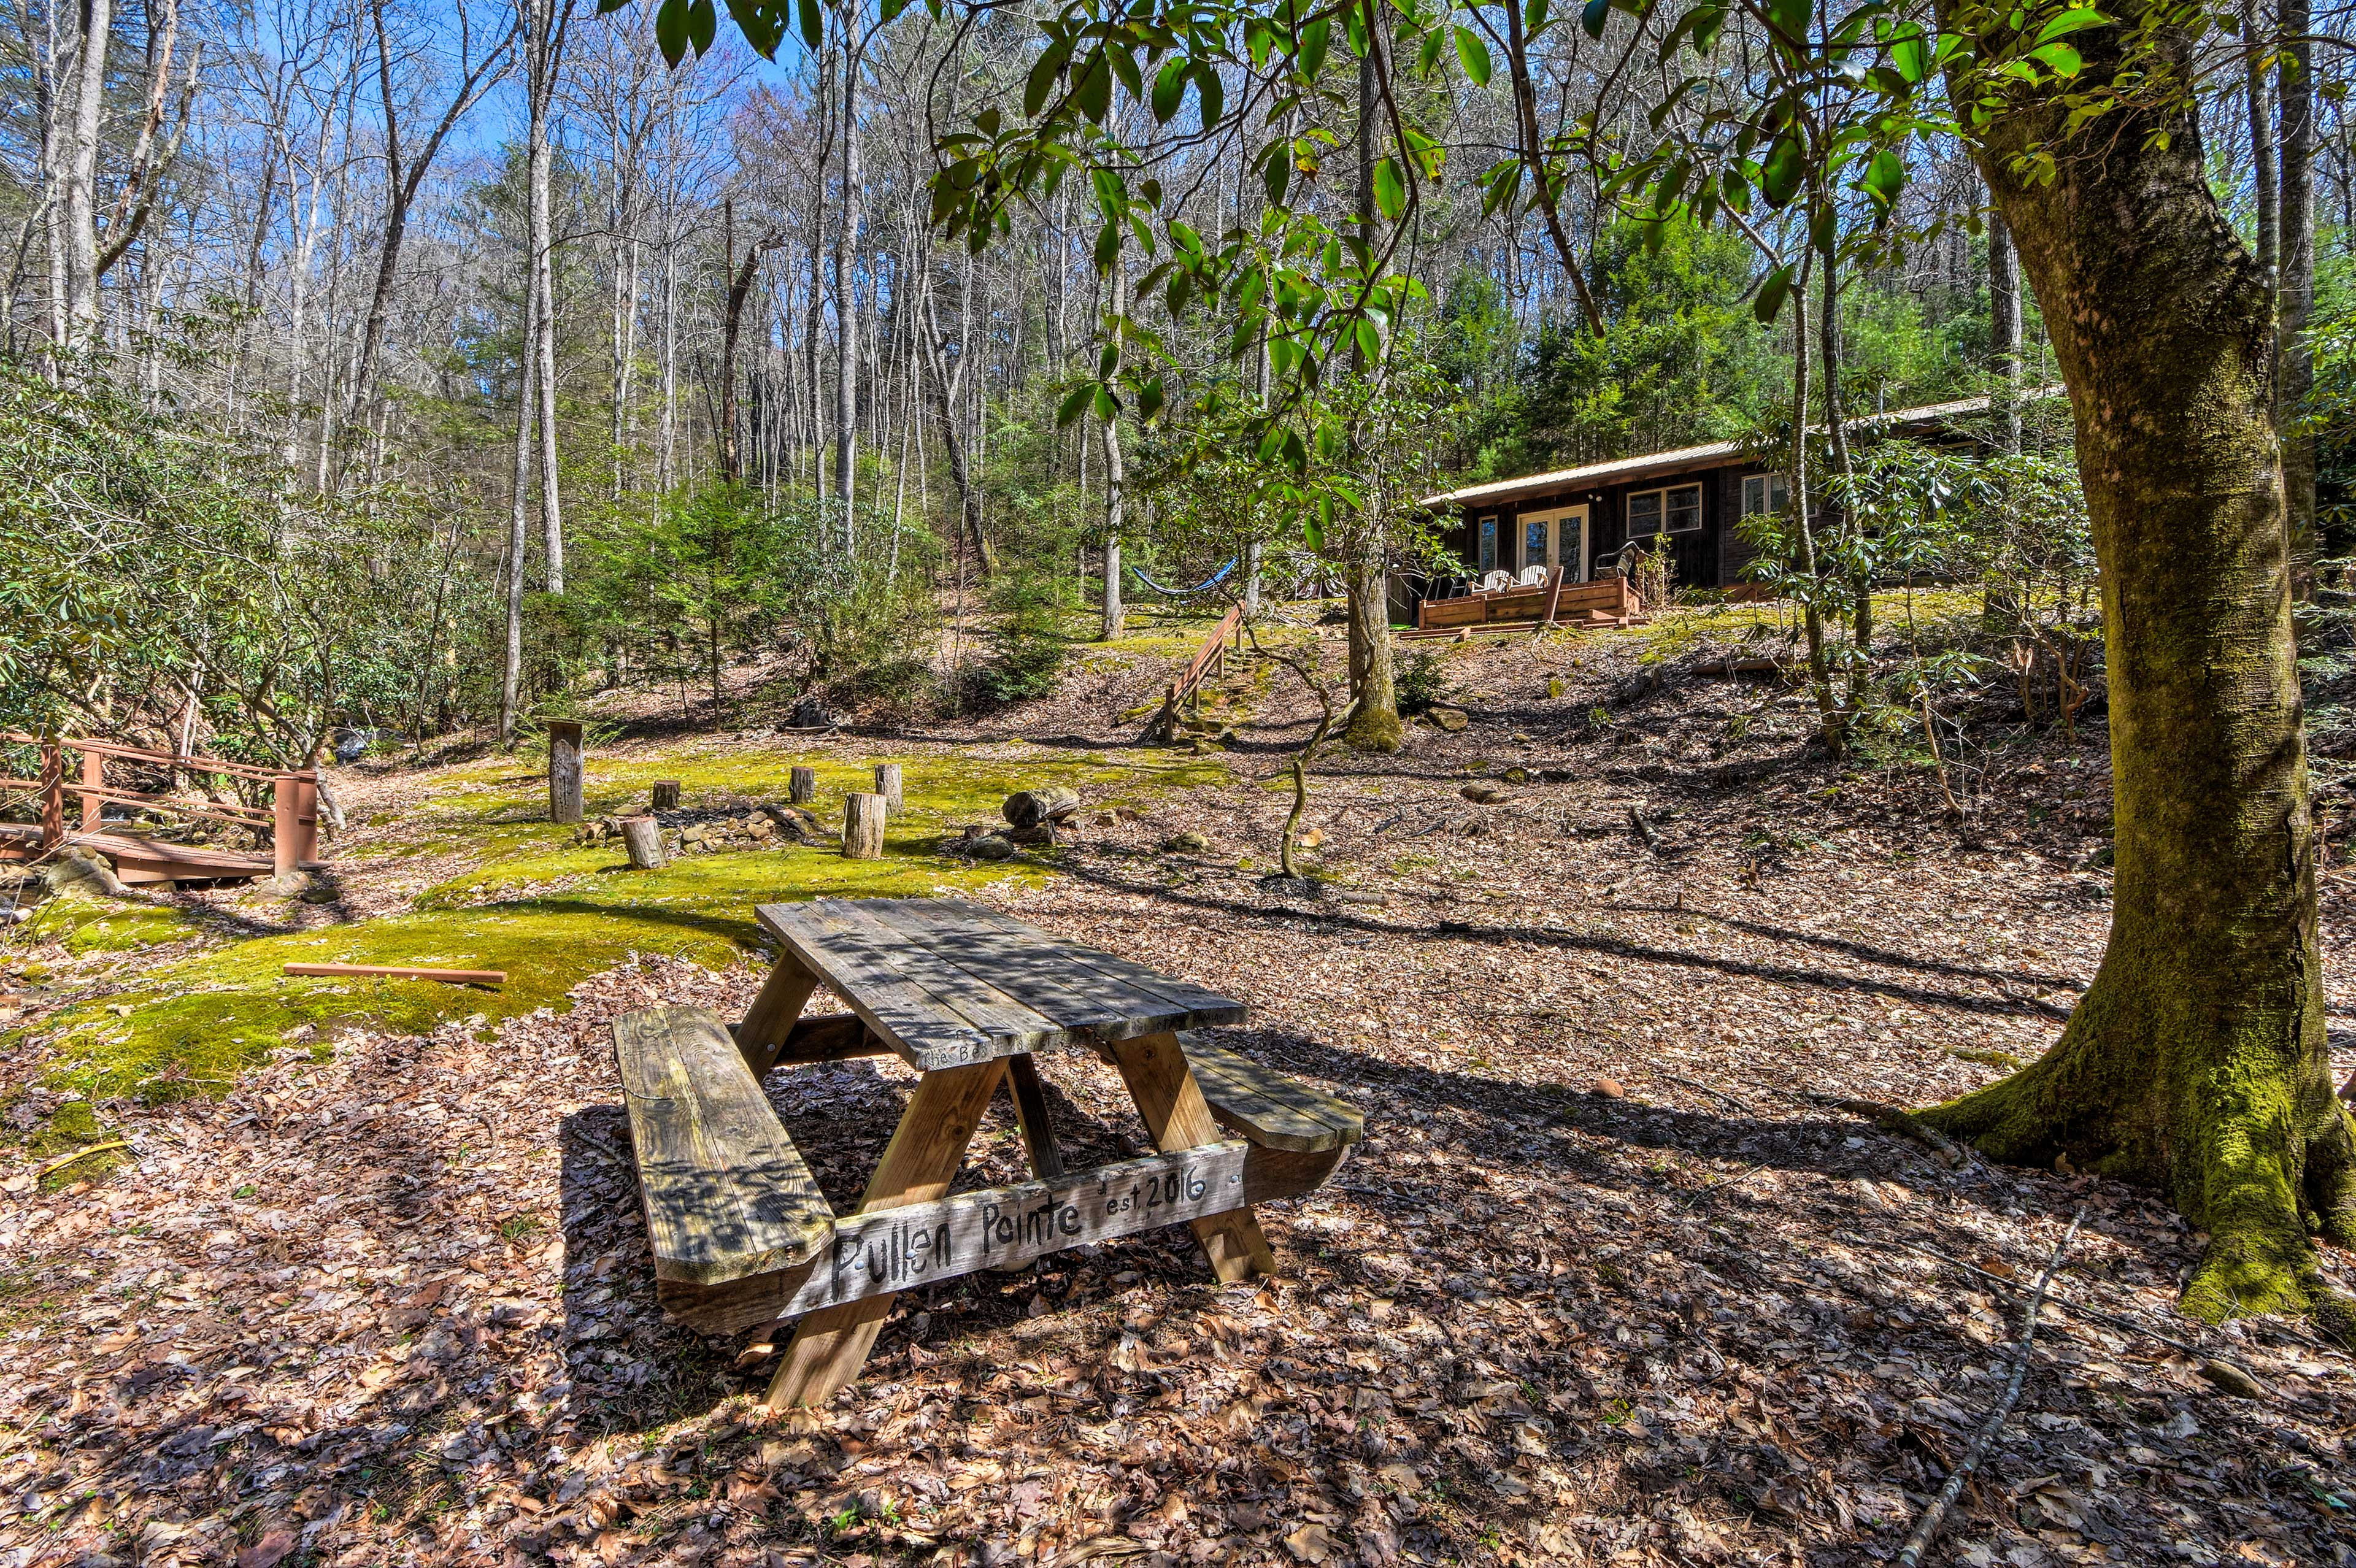 Moss-covered trees form a canopy above this quaint picnic area.